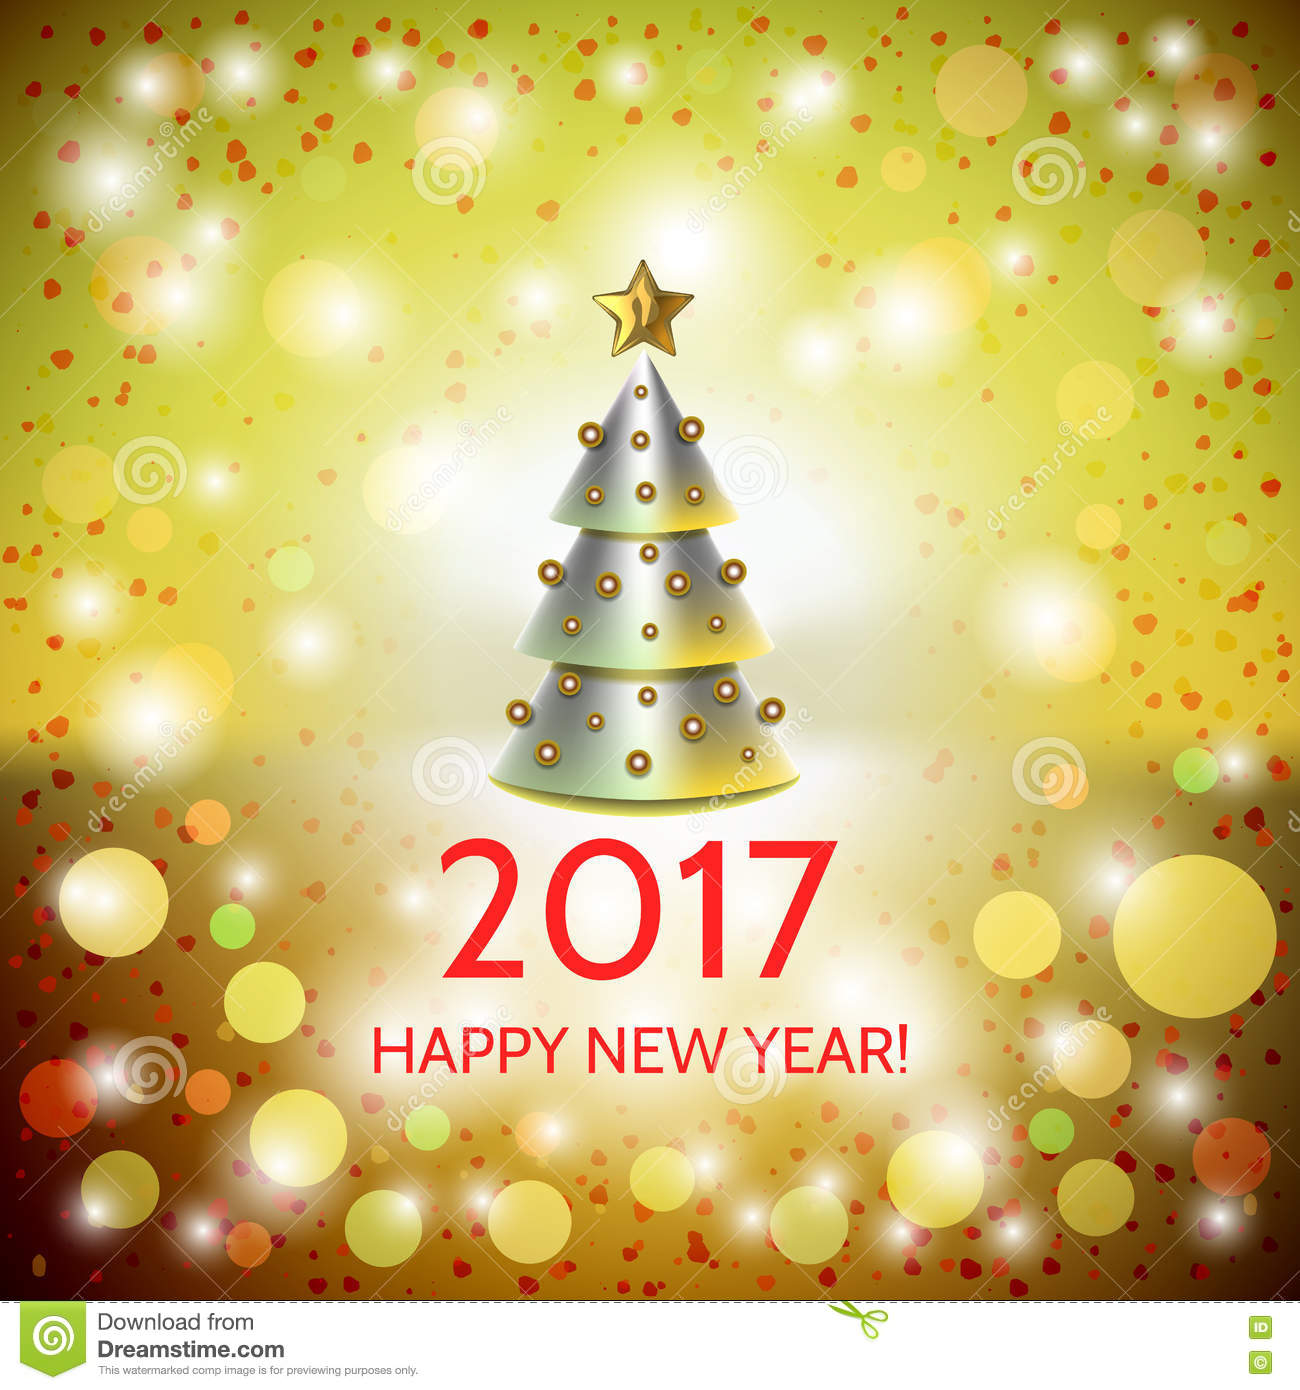 new year background with elegant christmas tree